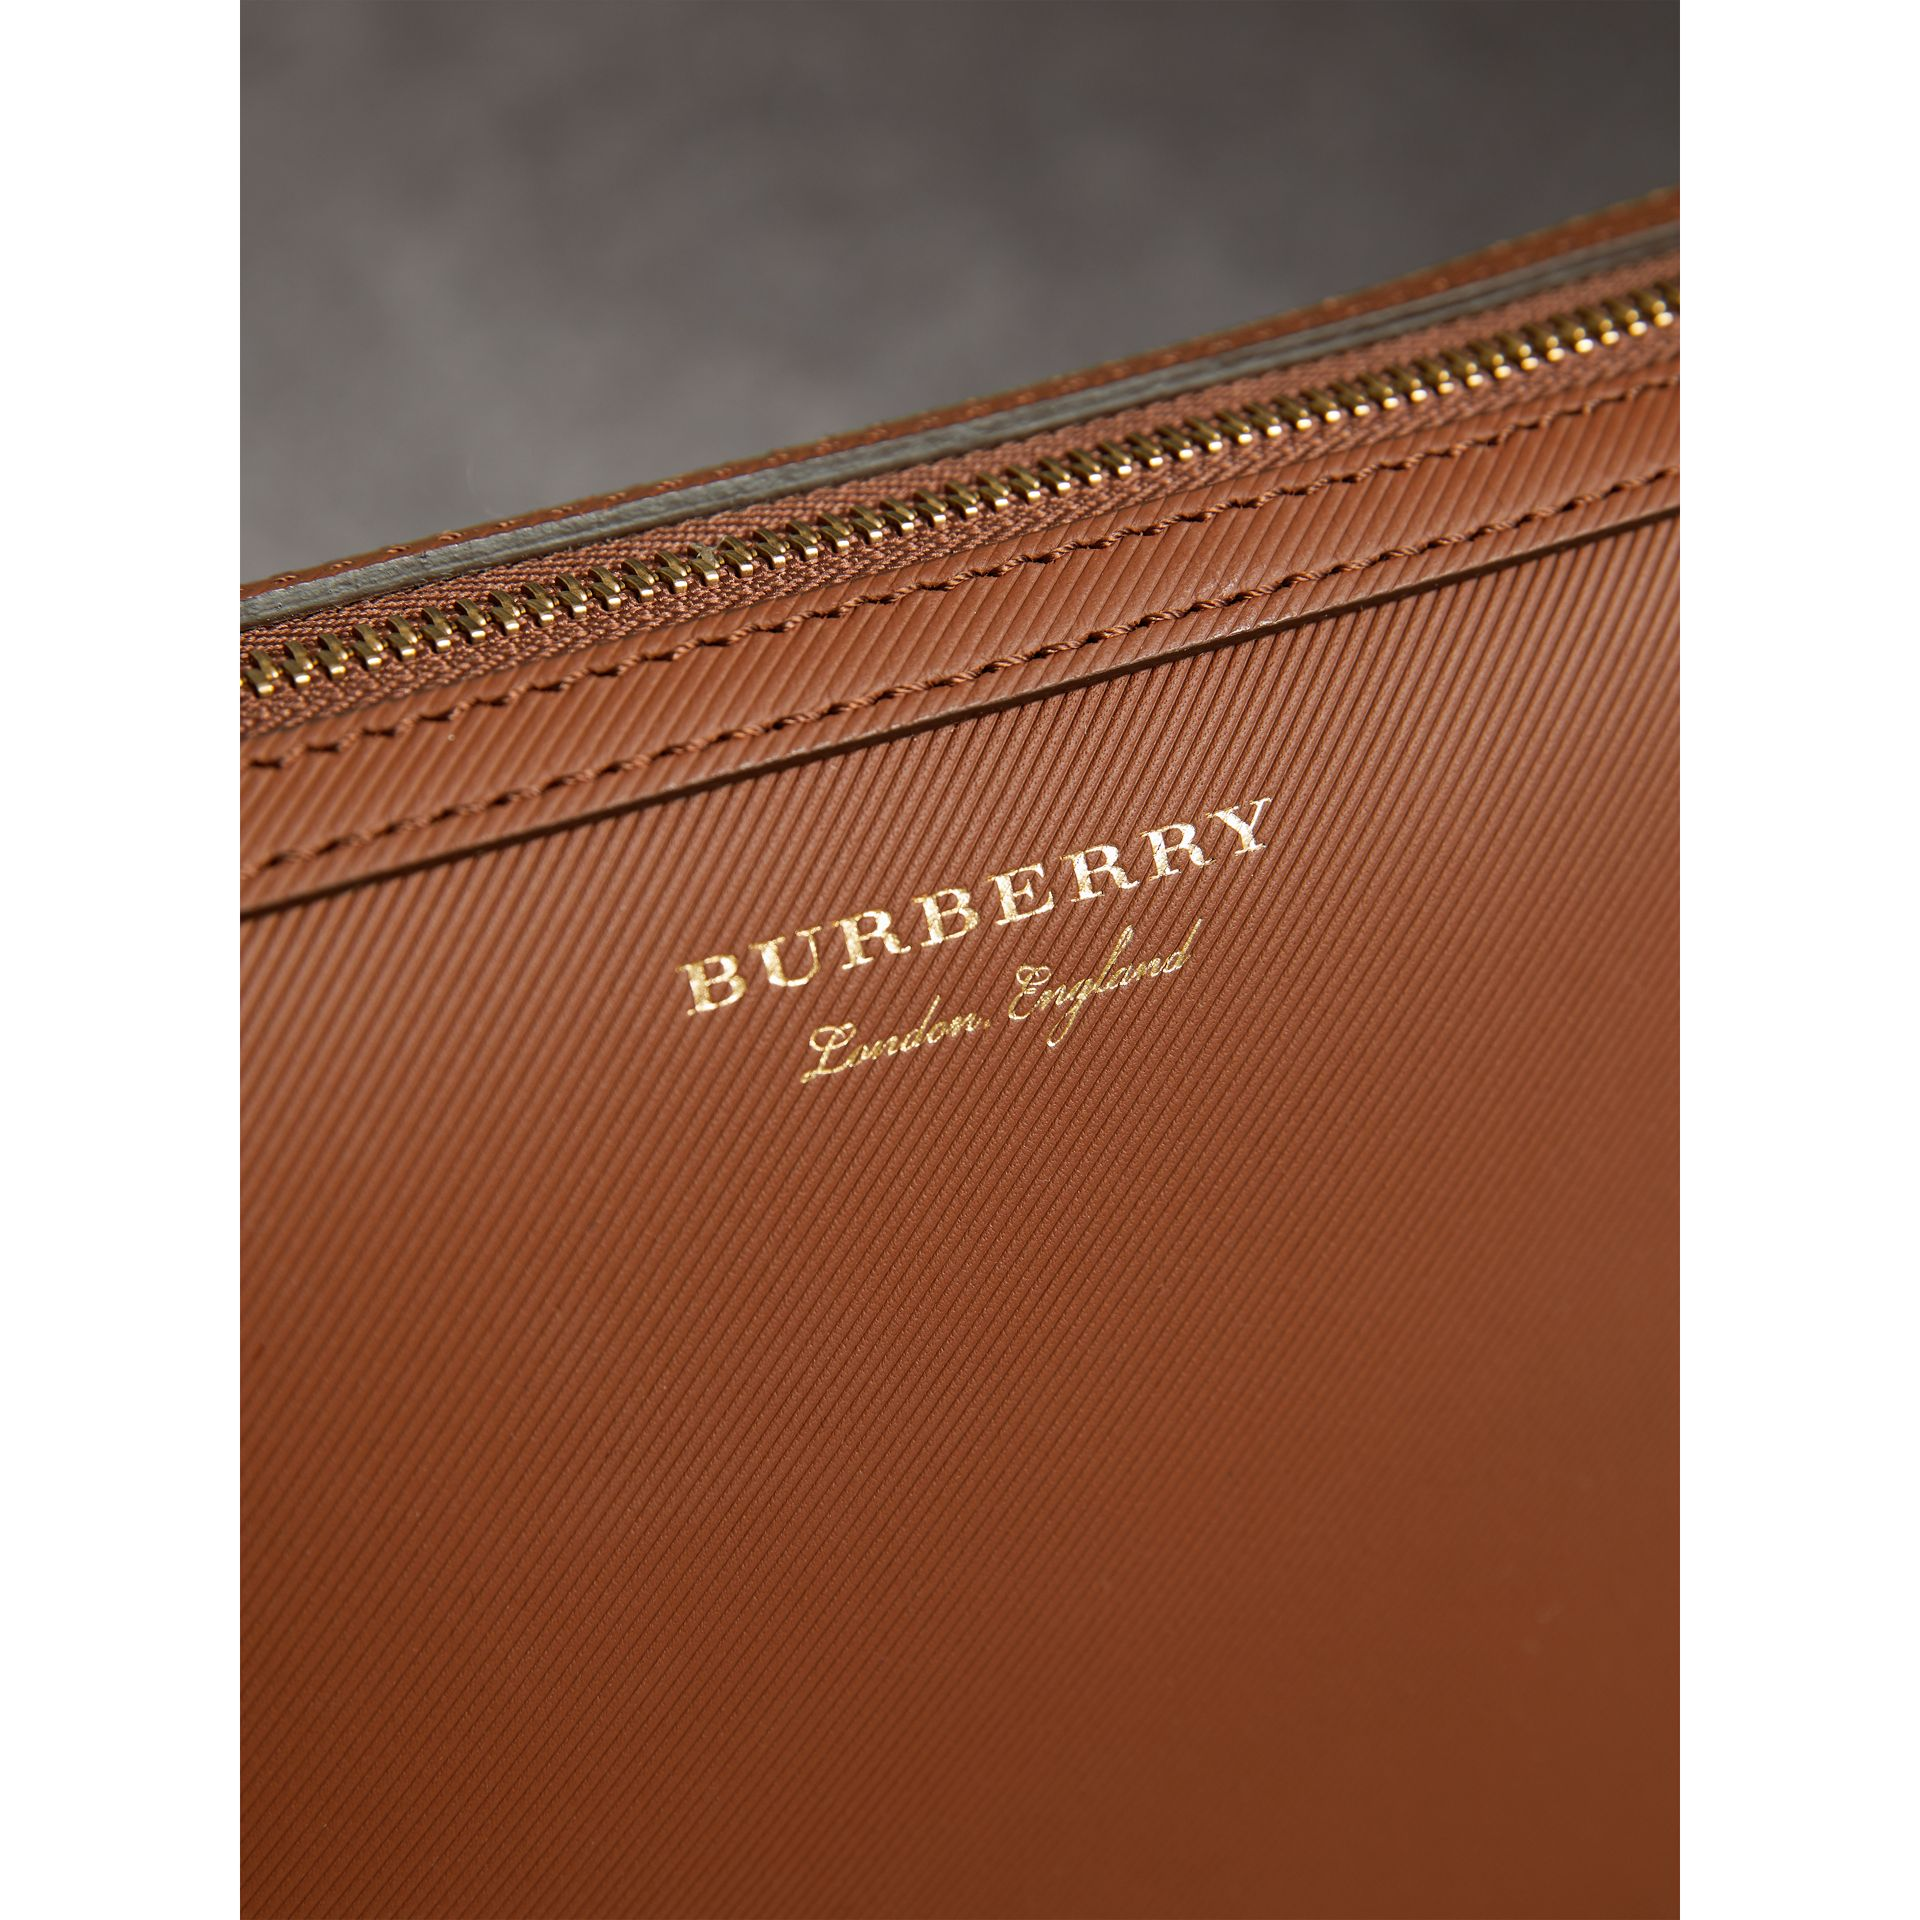 Trench Leather Pouch in Tan - Men | Burberry - gallery image 2